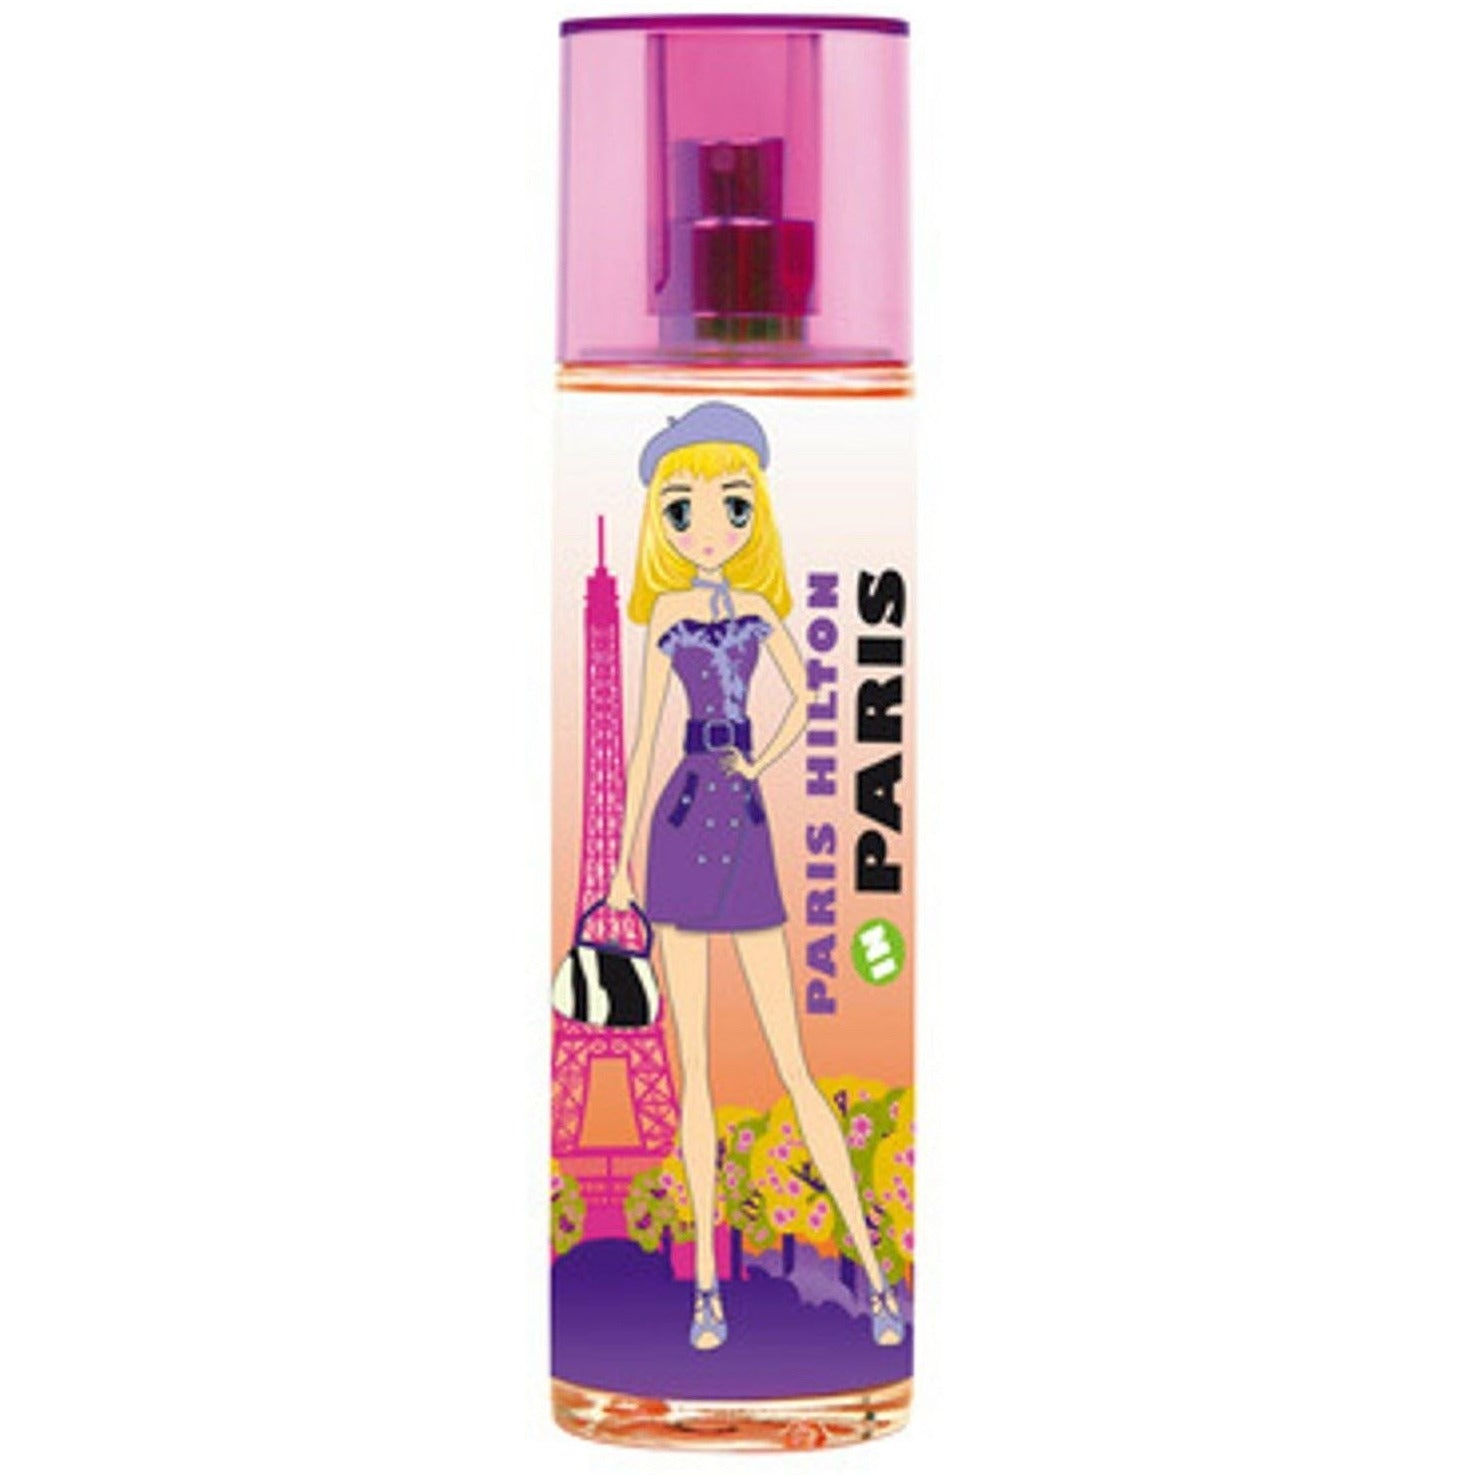 passport-paris-by-paris-hilton-women-3-4-oz-edt-3-3-spray-perfume-new-tester